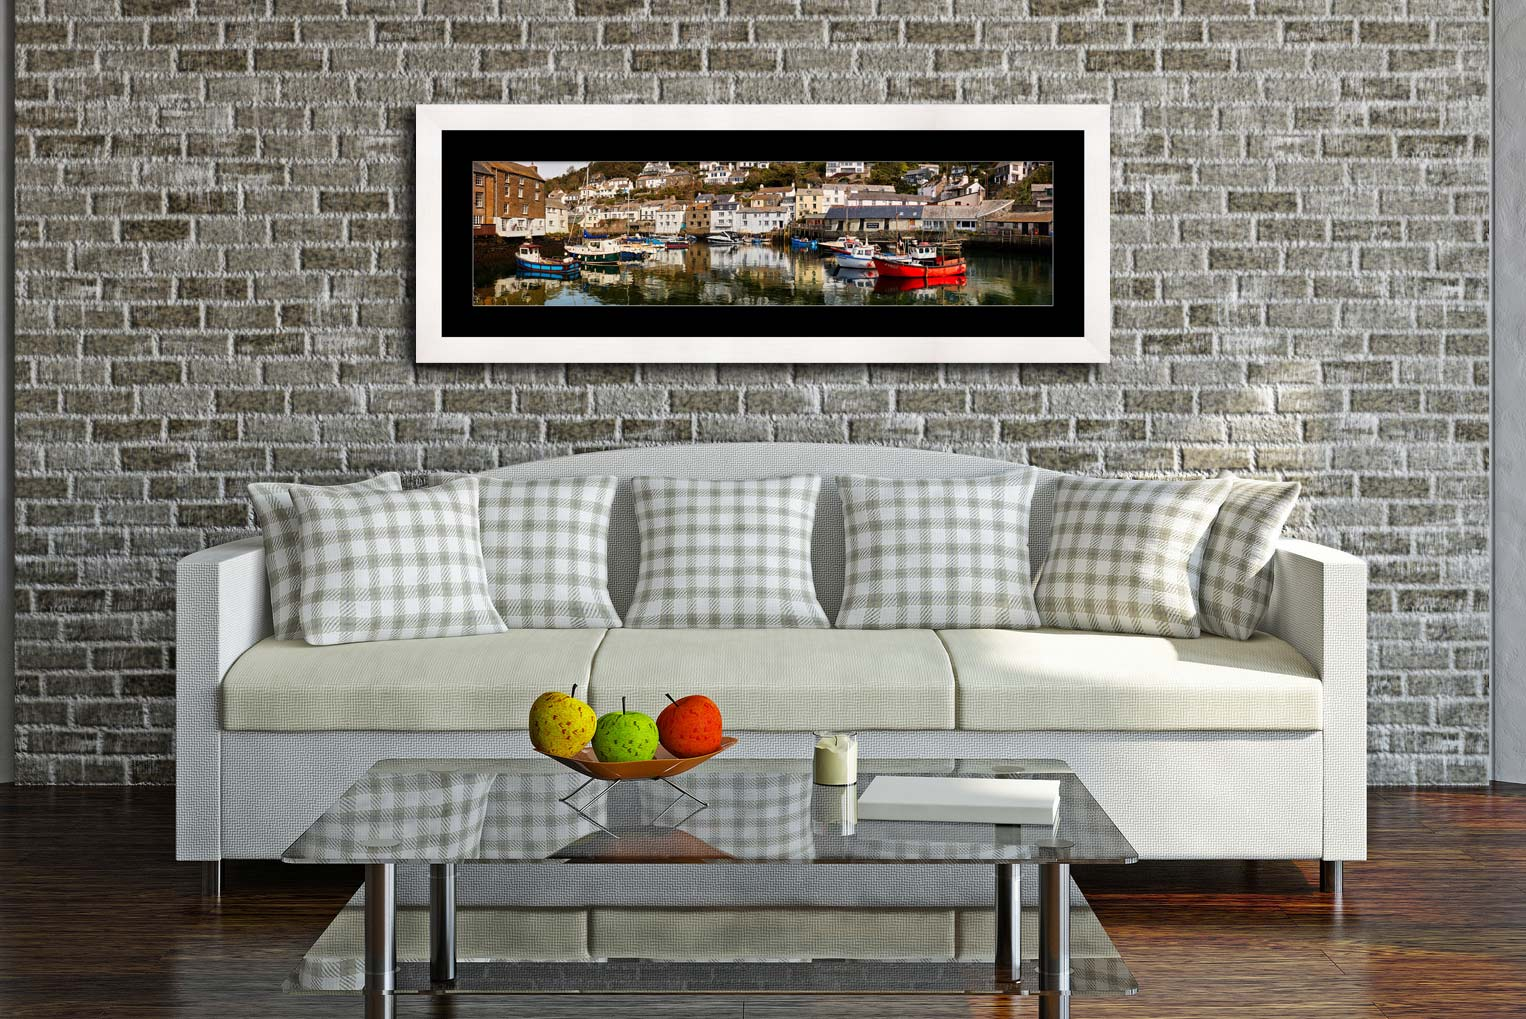 Polperro Reflections - Framed Print with Mount on Wall